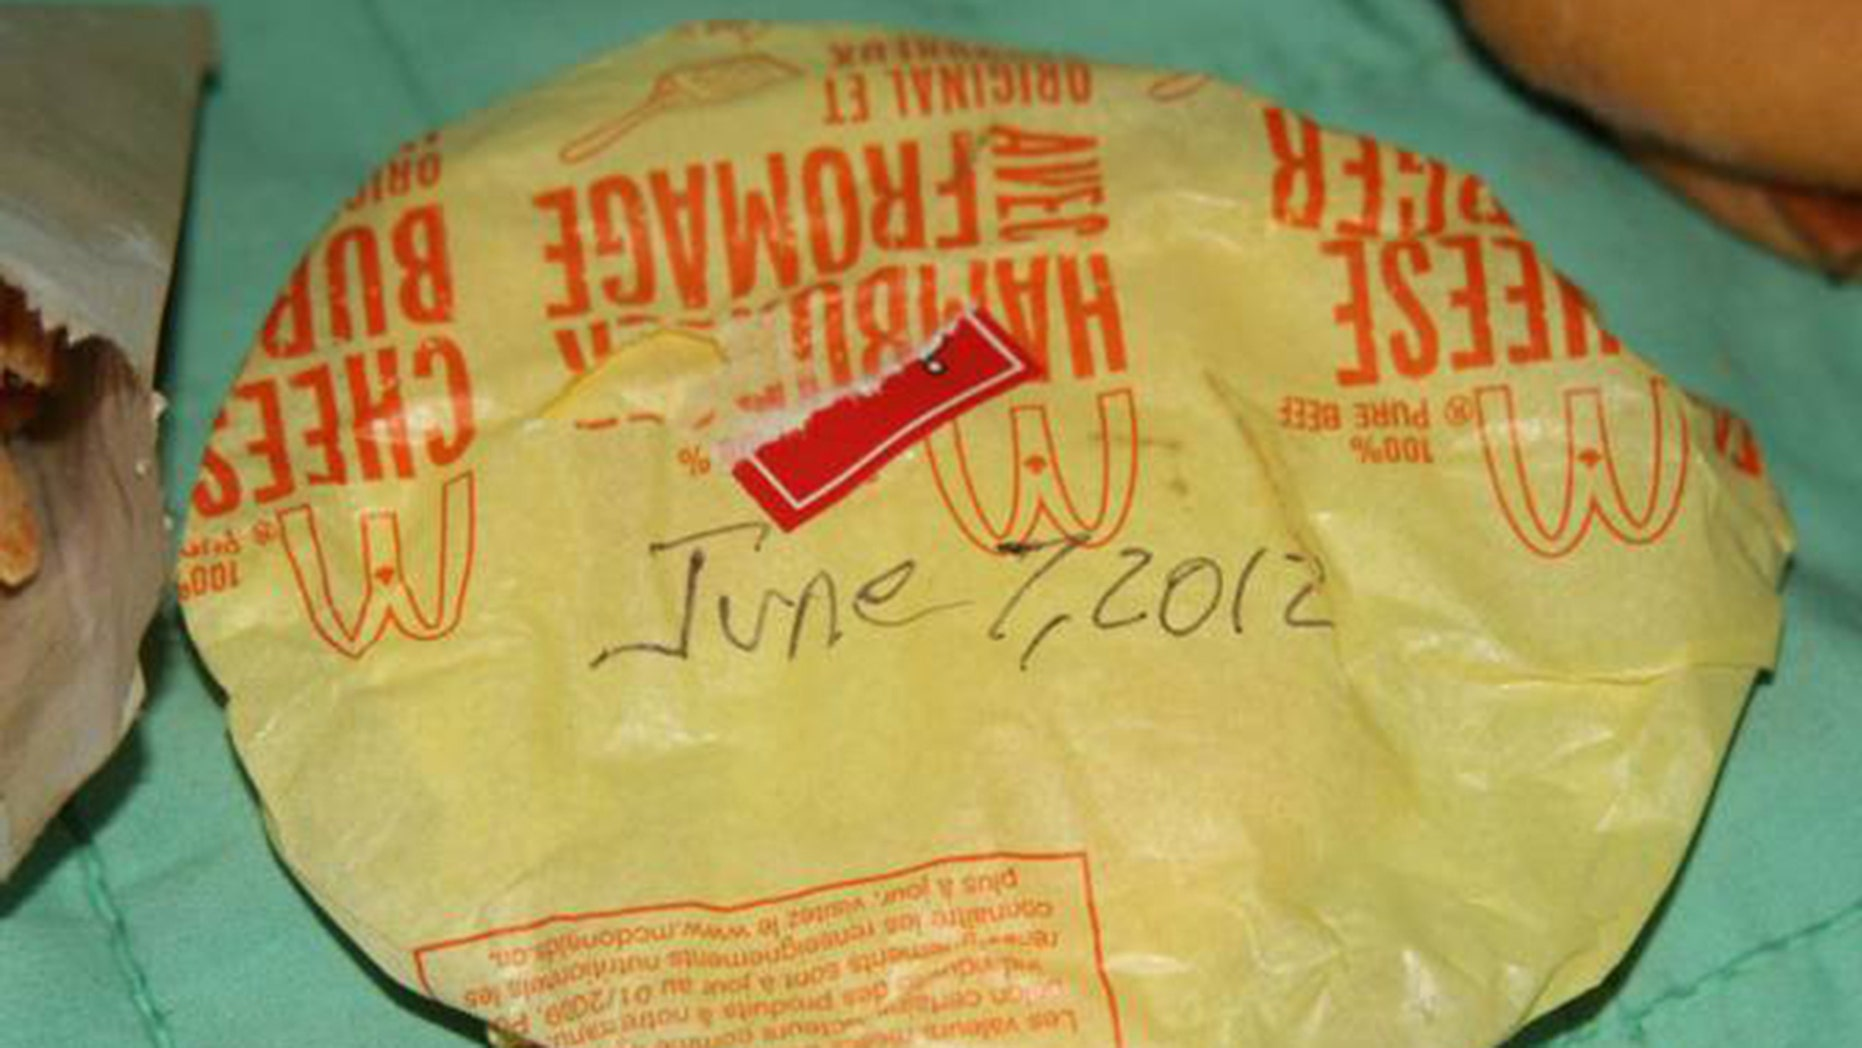 eBay pulls 6-year-old McDonald's cheeseburger and fries from